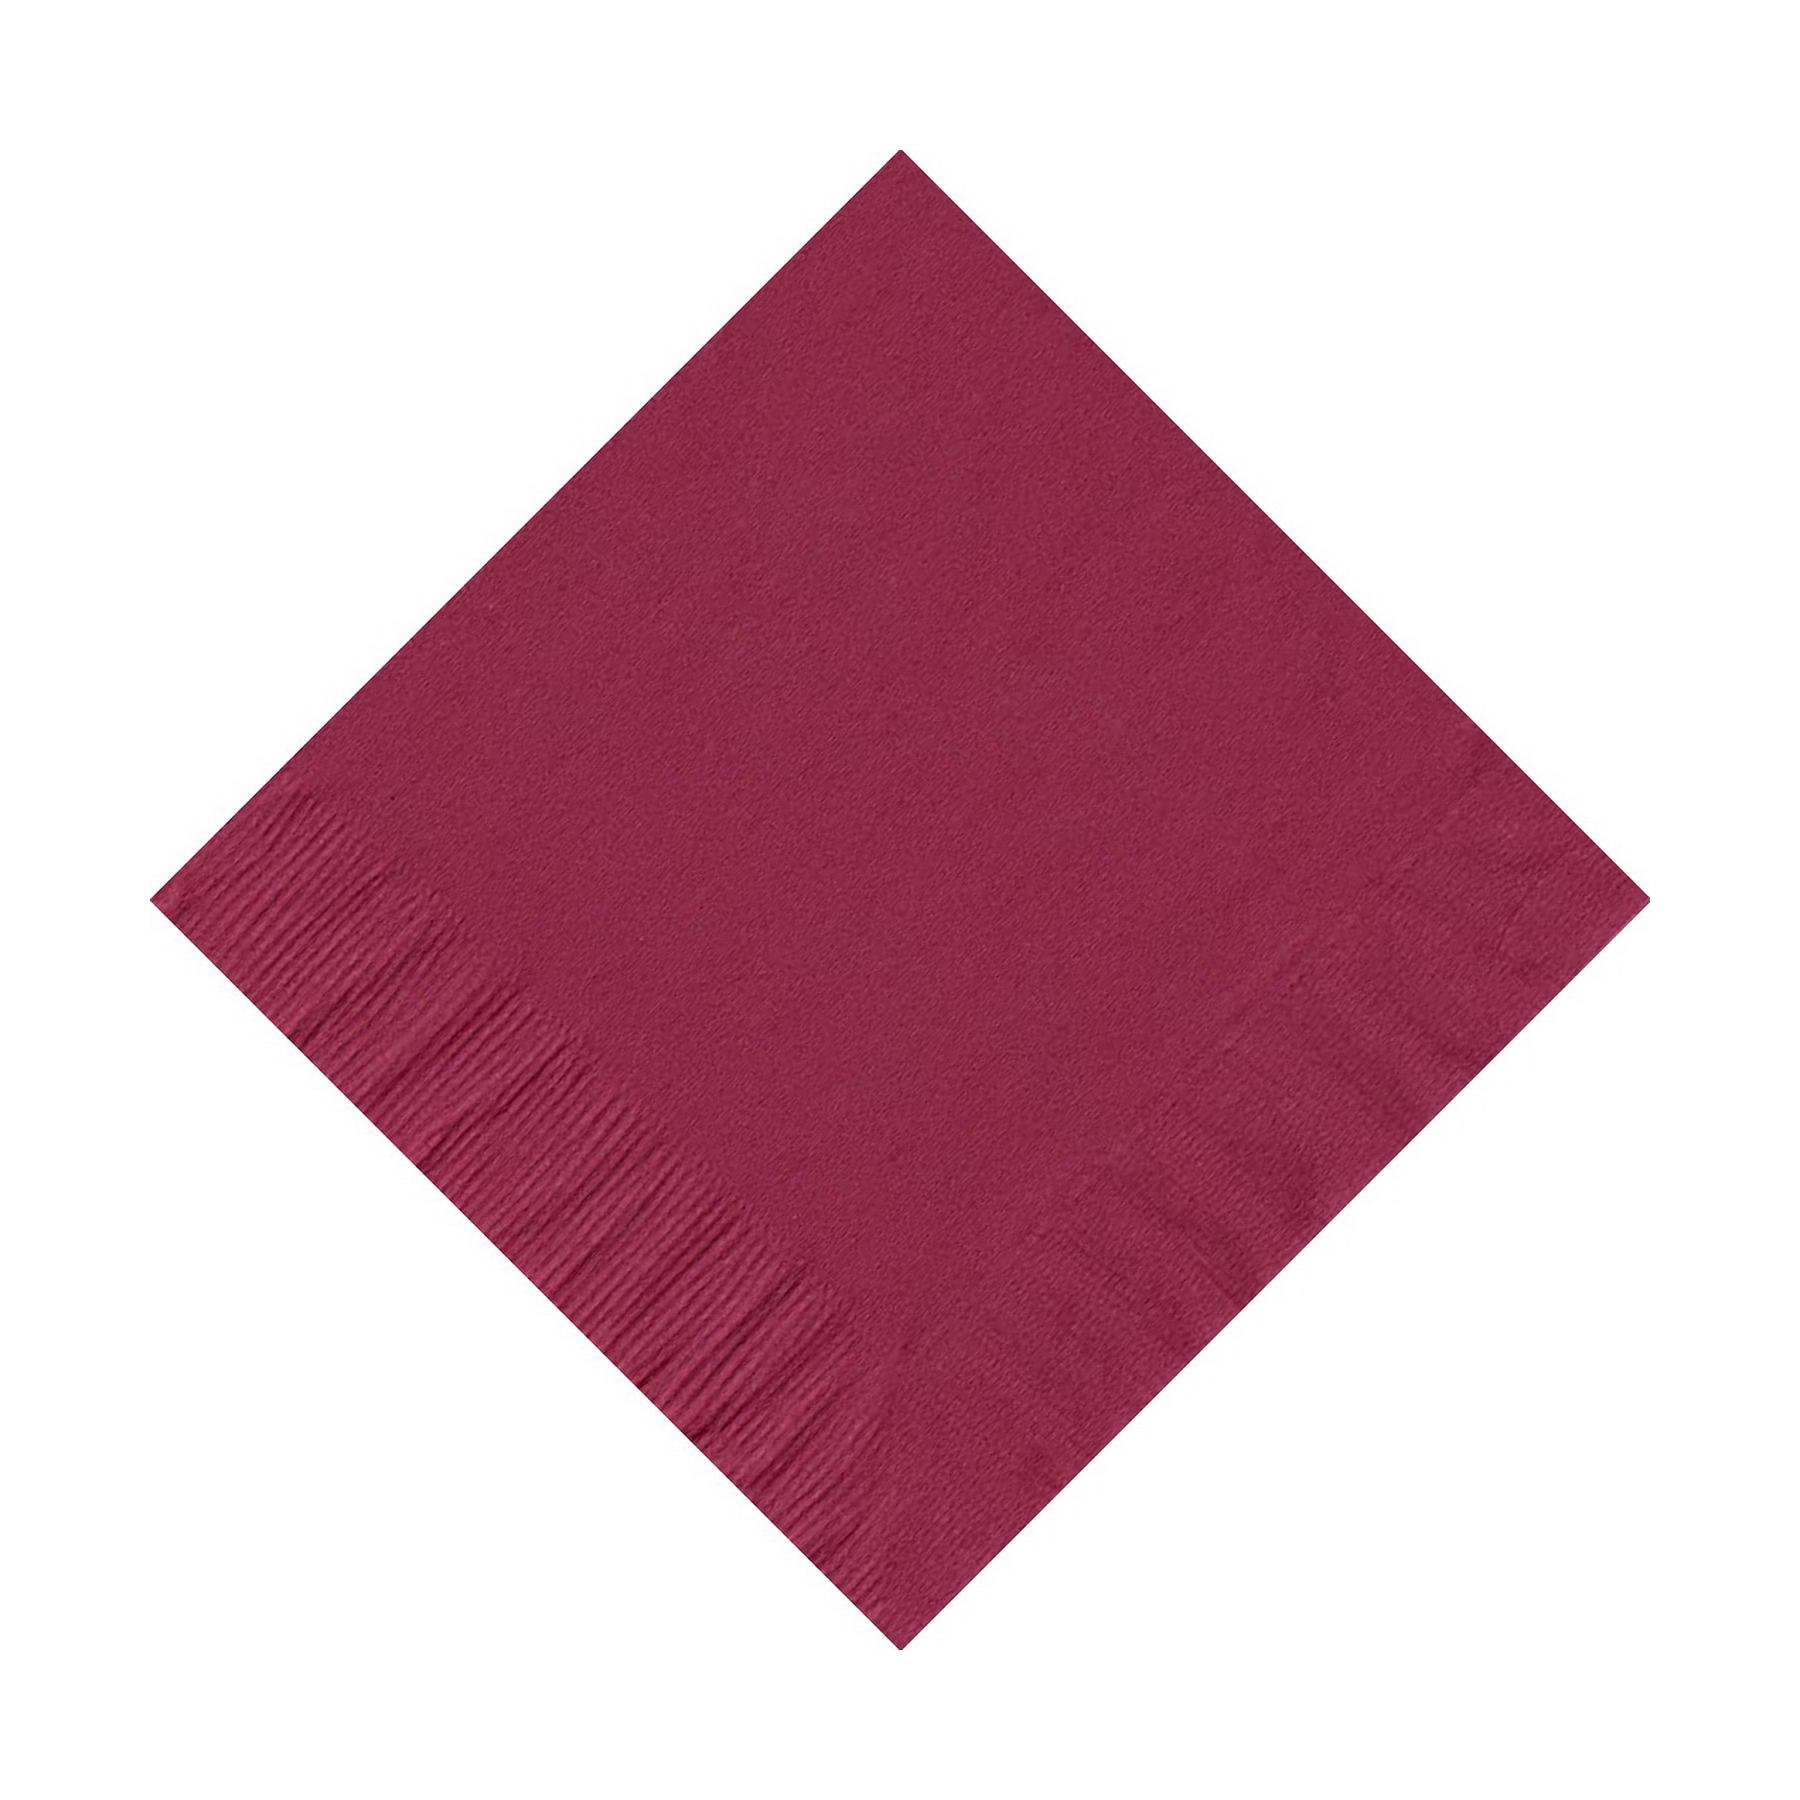 50 Plain Solid Colors Beverage Cocktail Napkins Paper Burgundy by CREATIVE CONVERTING